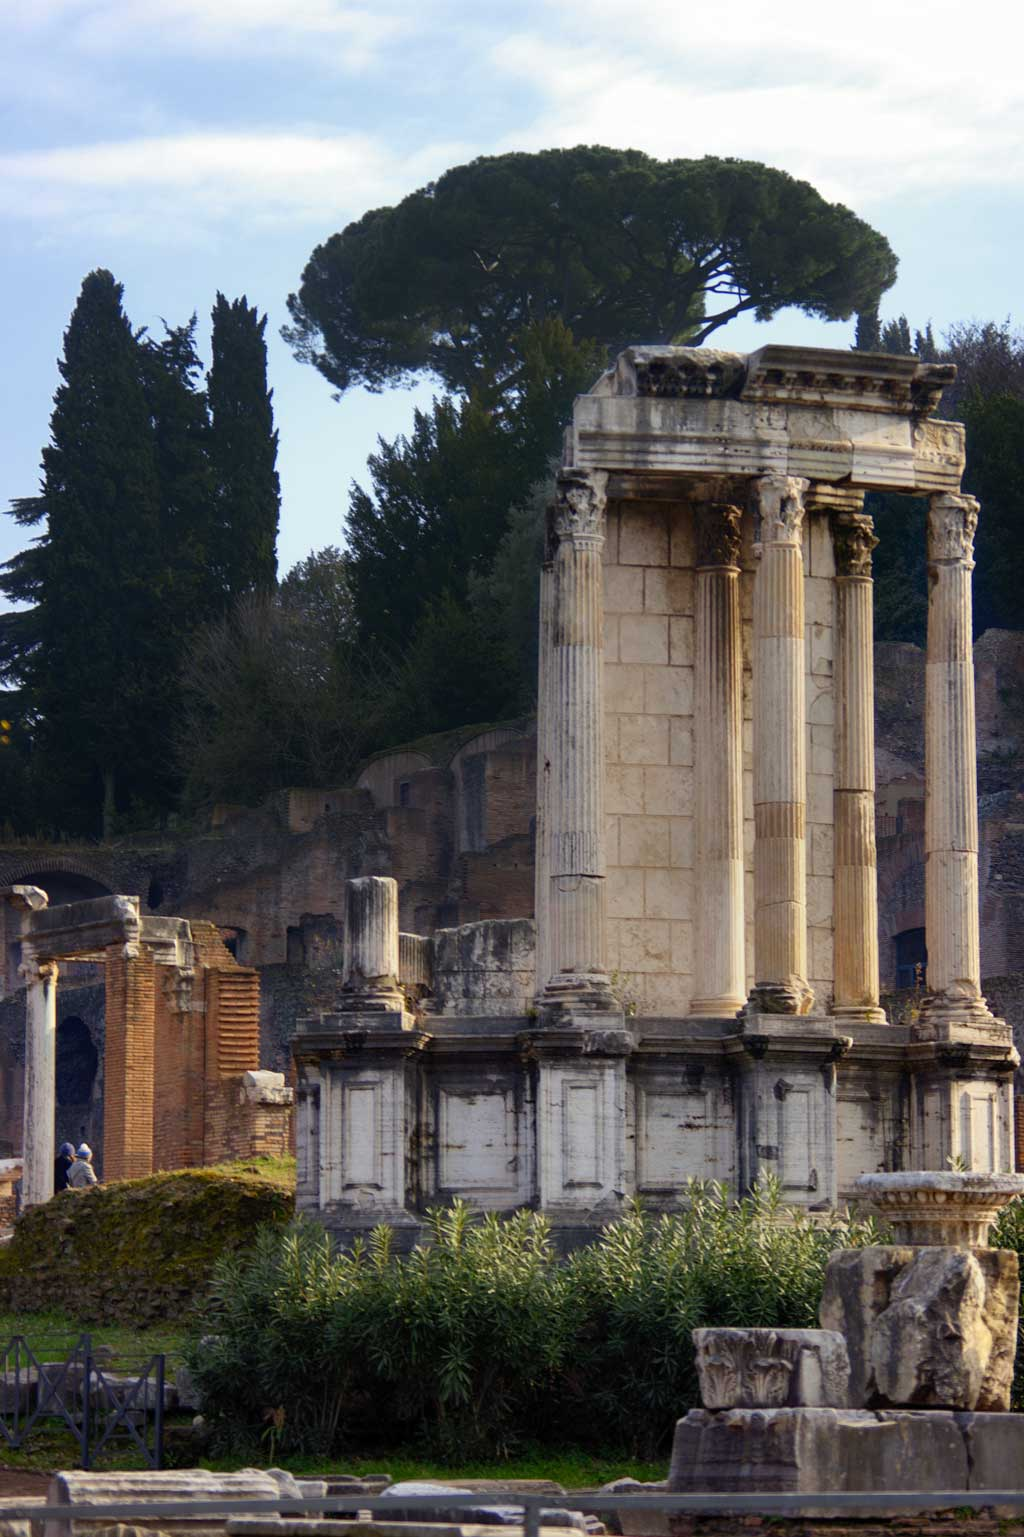 Picture of the marble column remains from the Temple of the Vestal Virgins in Rome, Italy.